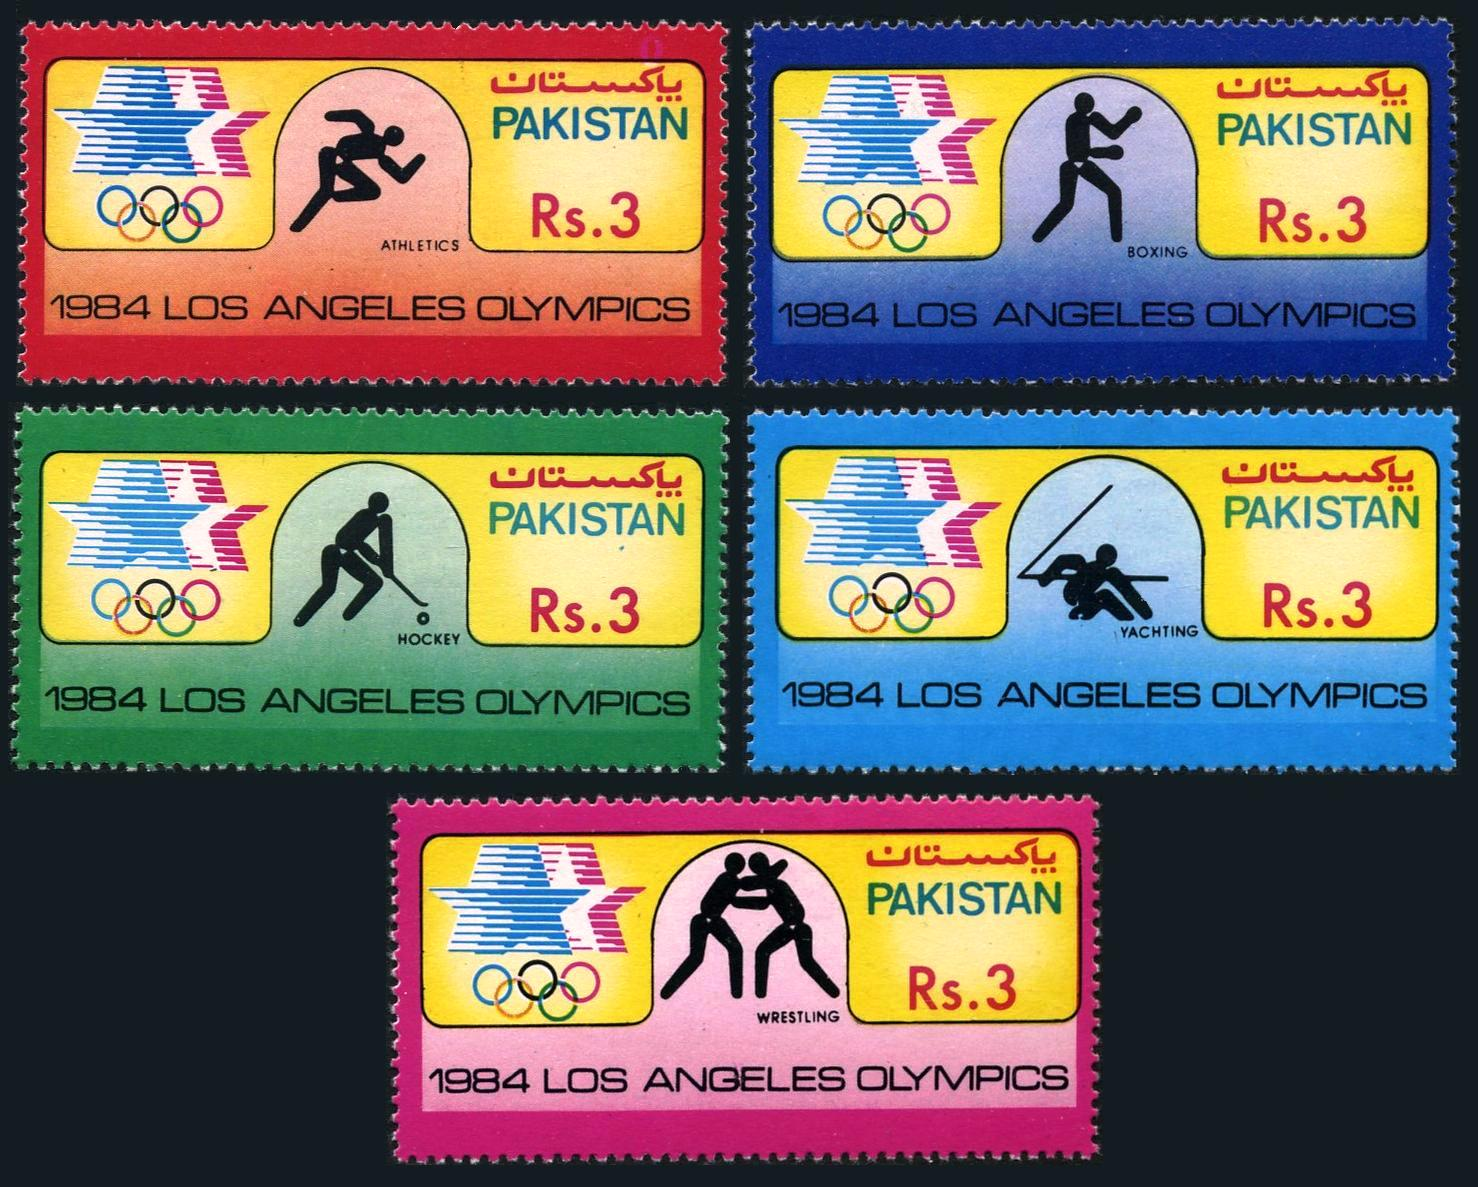 Pakistan Stamps 1984 Los Angeles Olympic Games